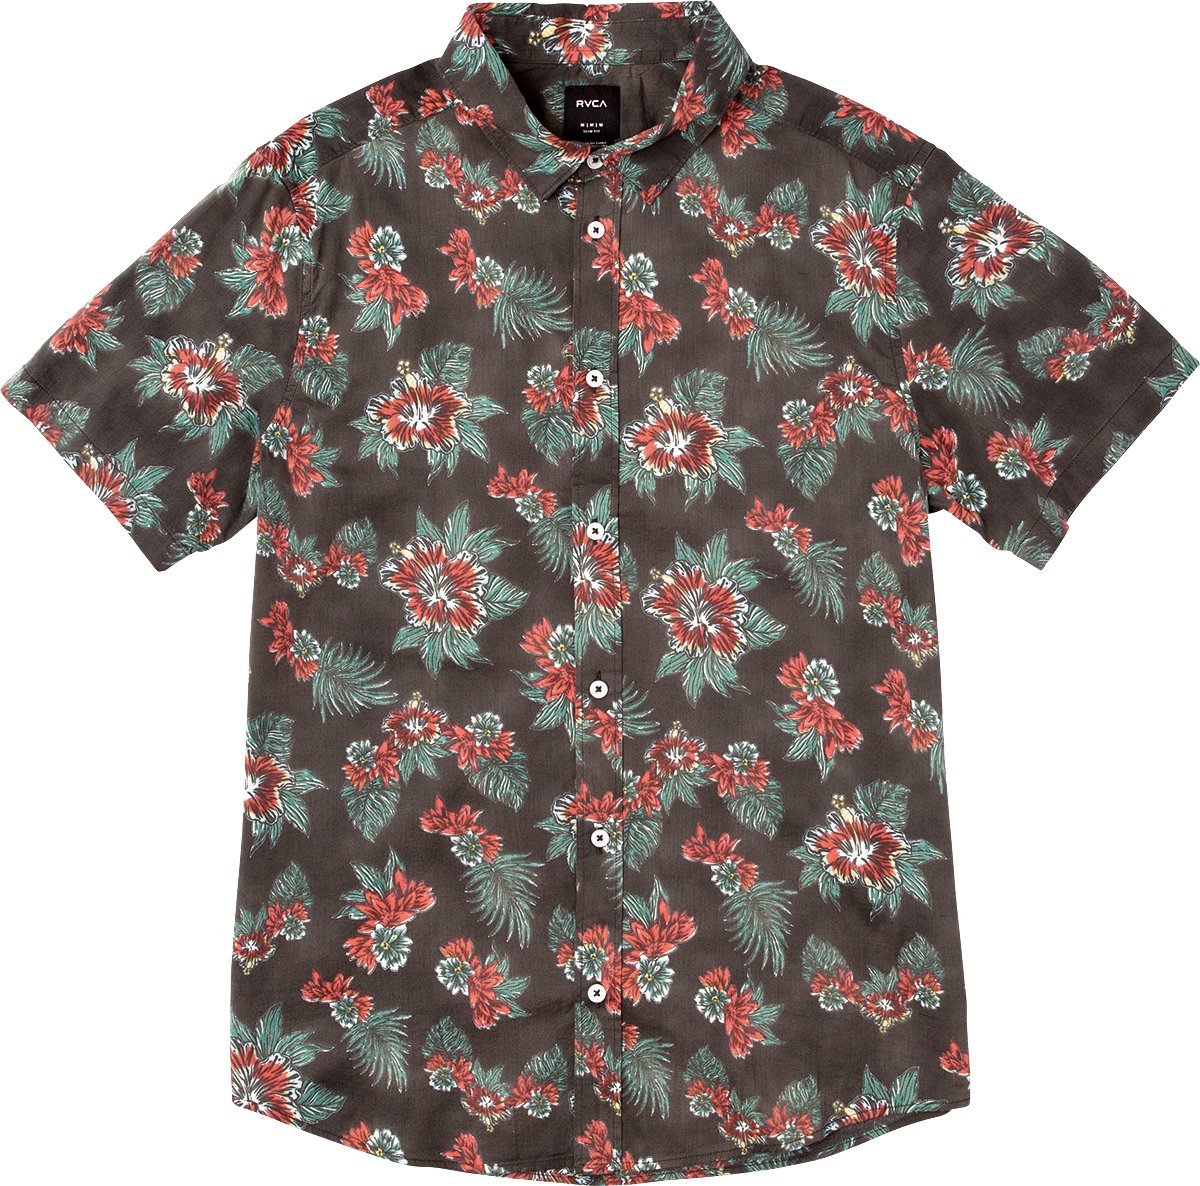 McMillan Floral Button-Up Shirt